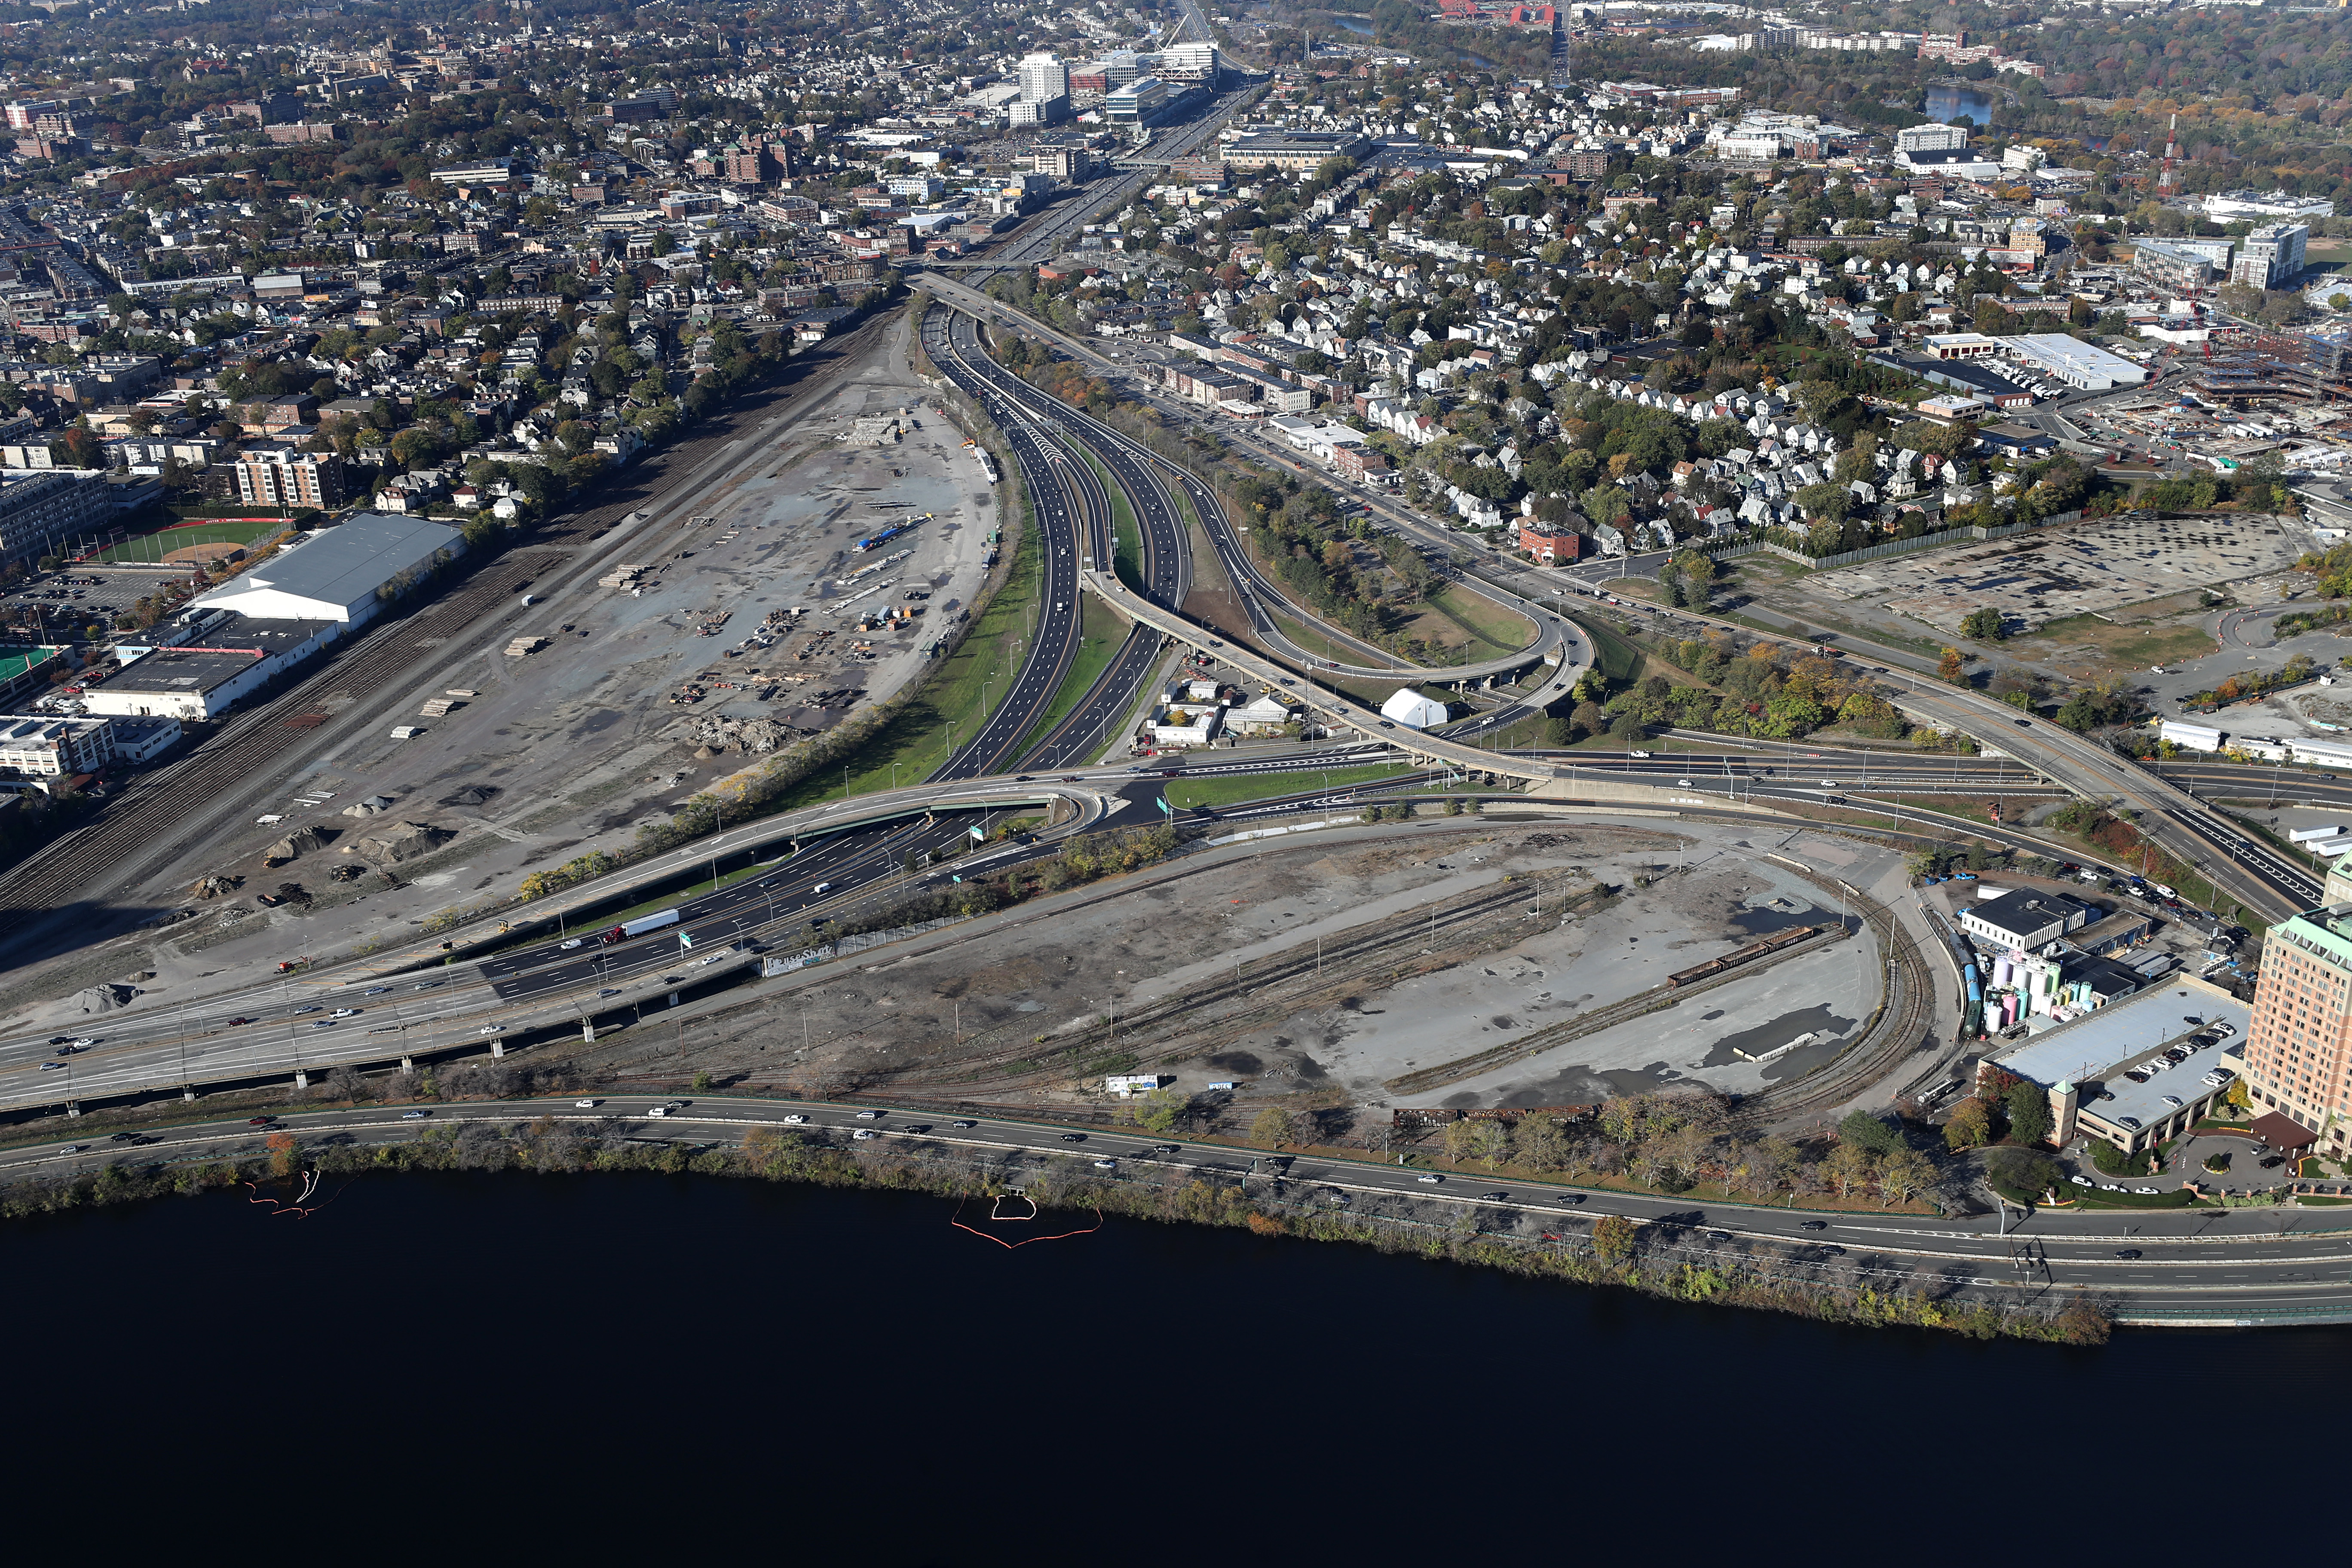 Mass. Pike project in Allston to cost $1 billion or more